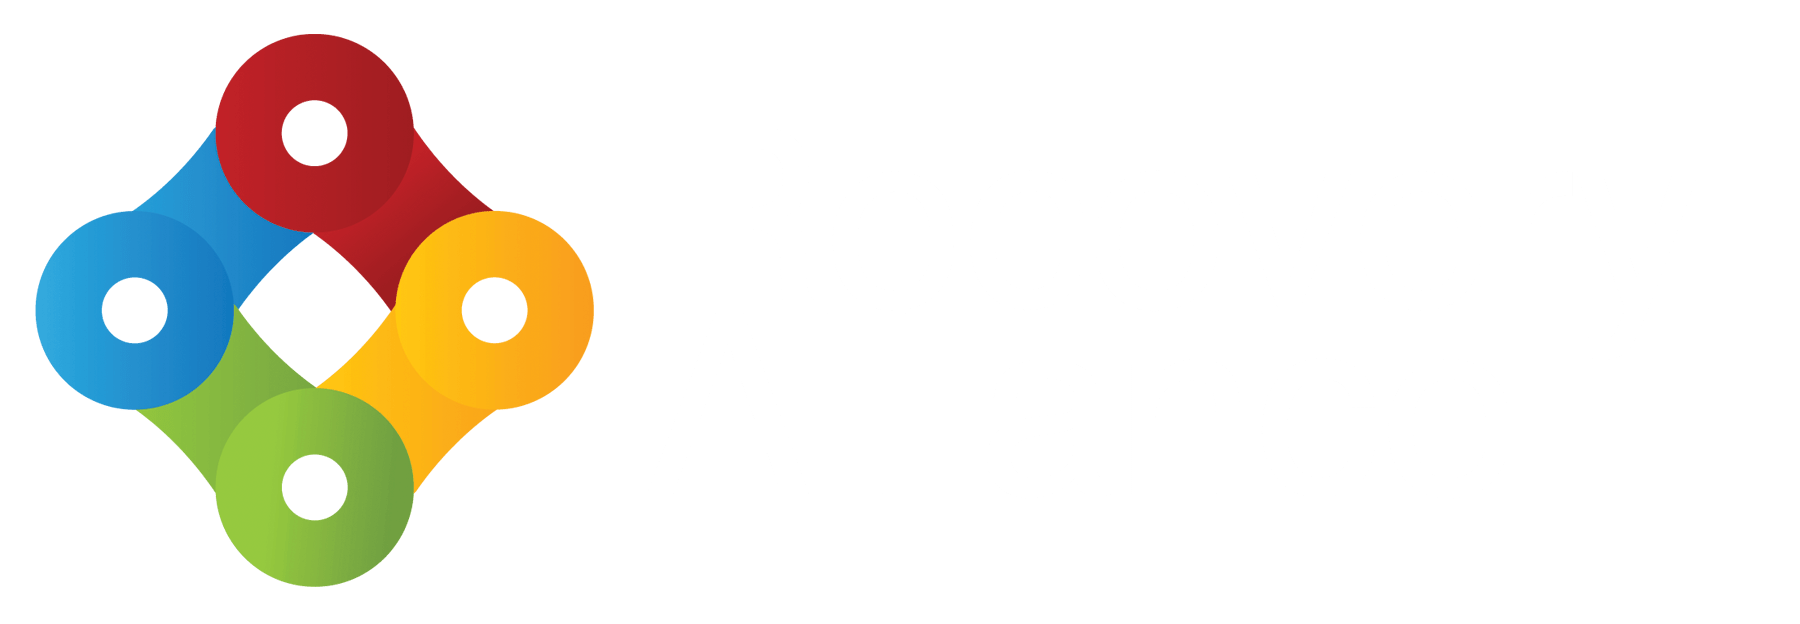 RecoveryAllianceInitiative-logo - white